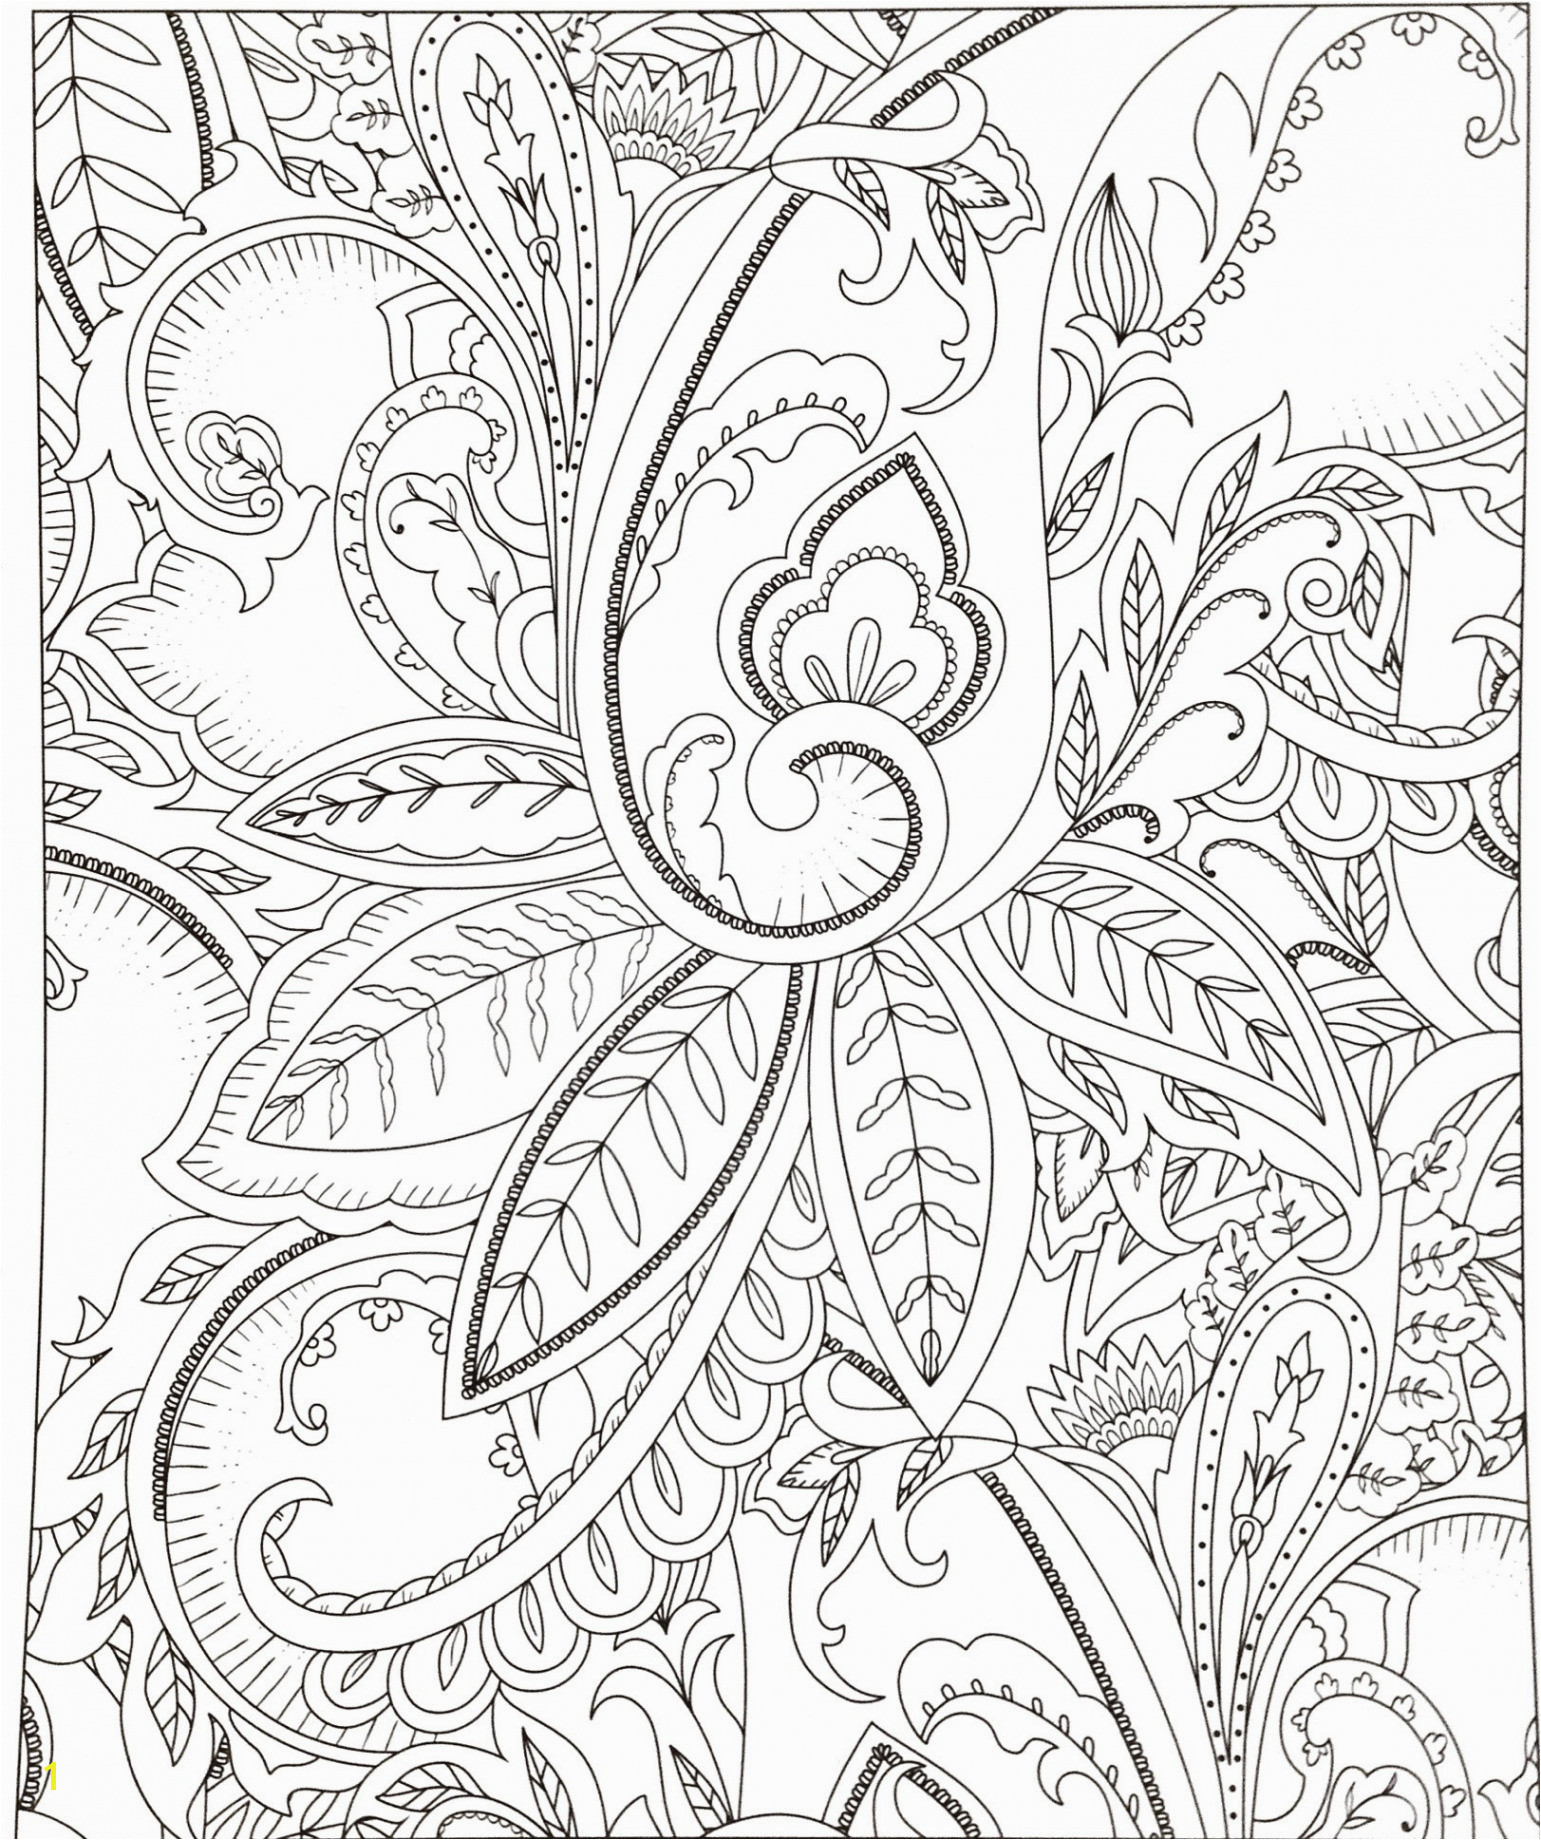 Shopping line for Christmas 2019 Line Christmas Coloring Pages Elegant Coloring Line 0d Archives Se